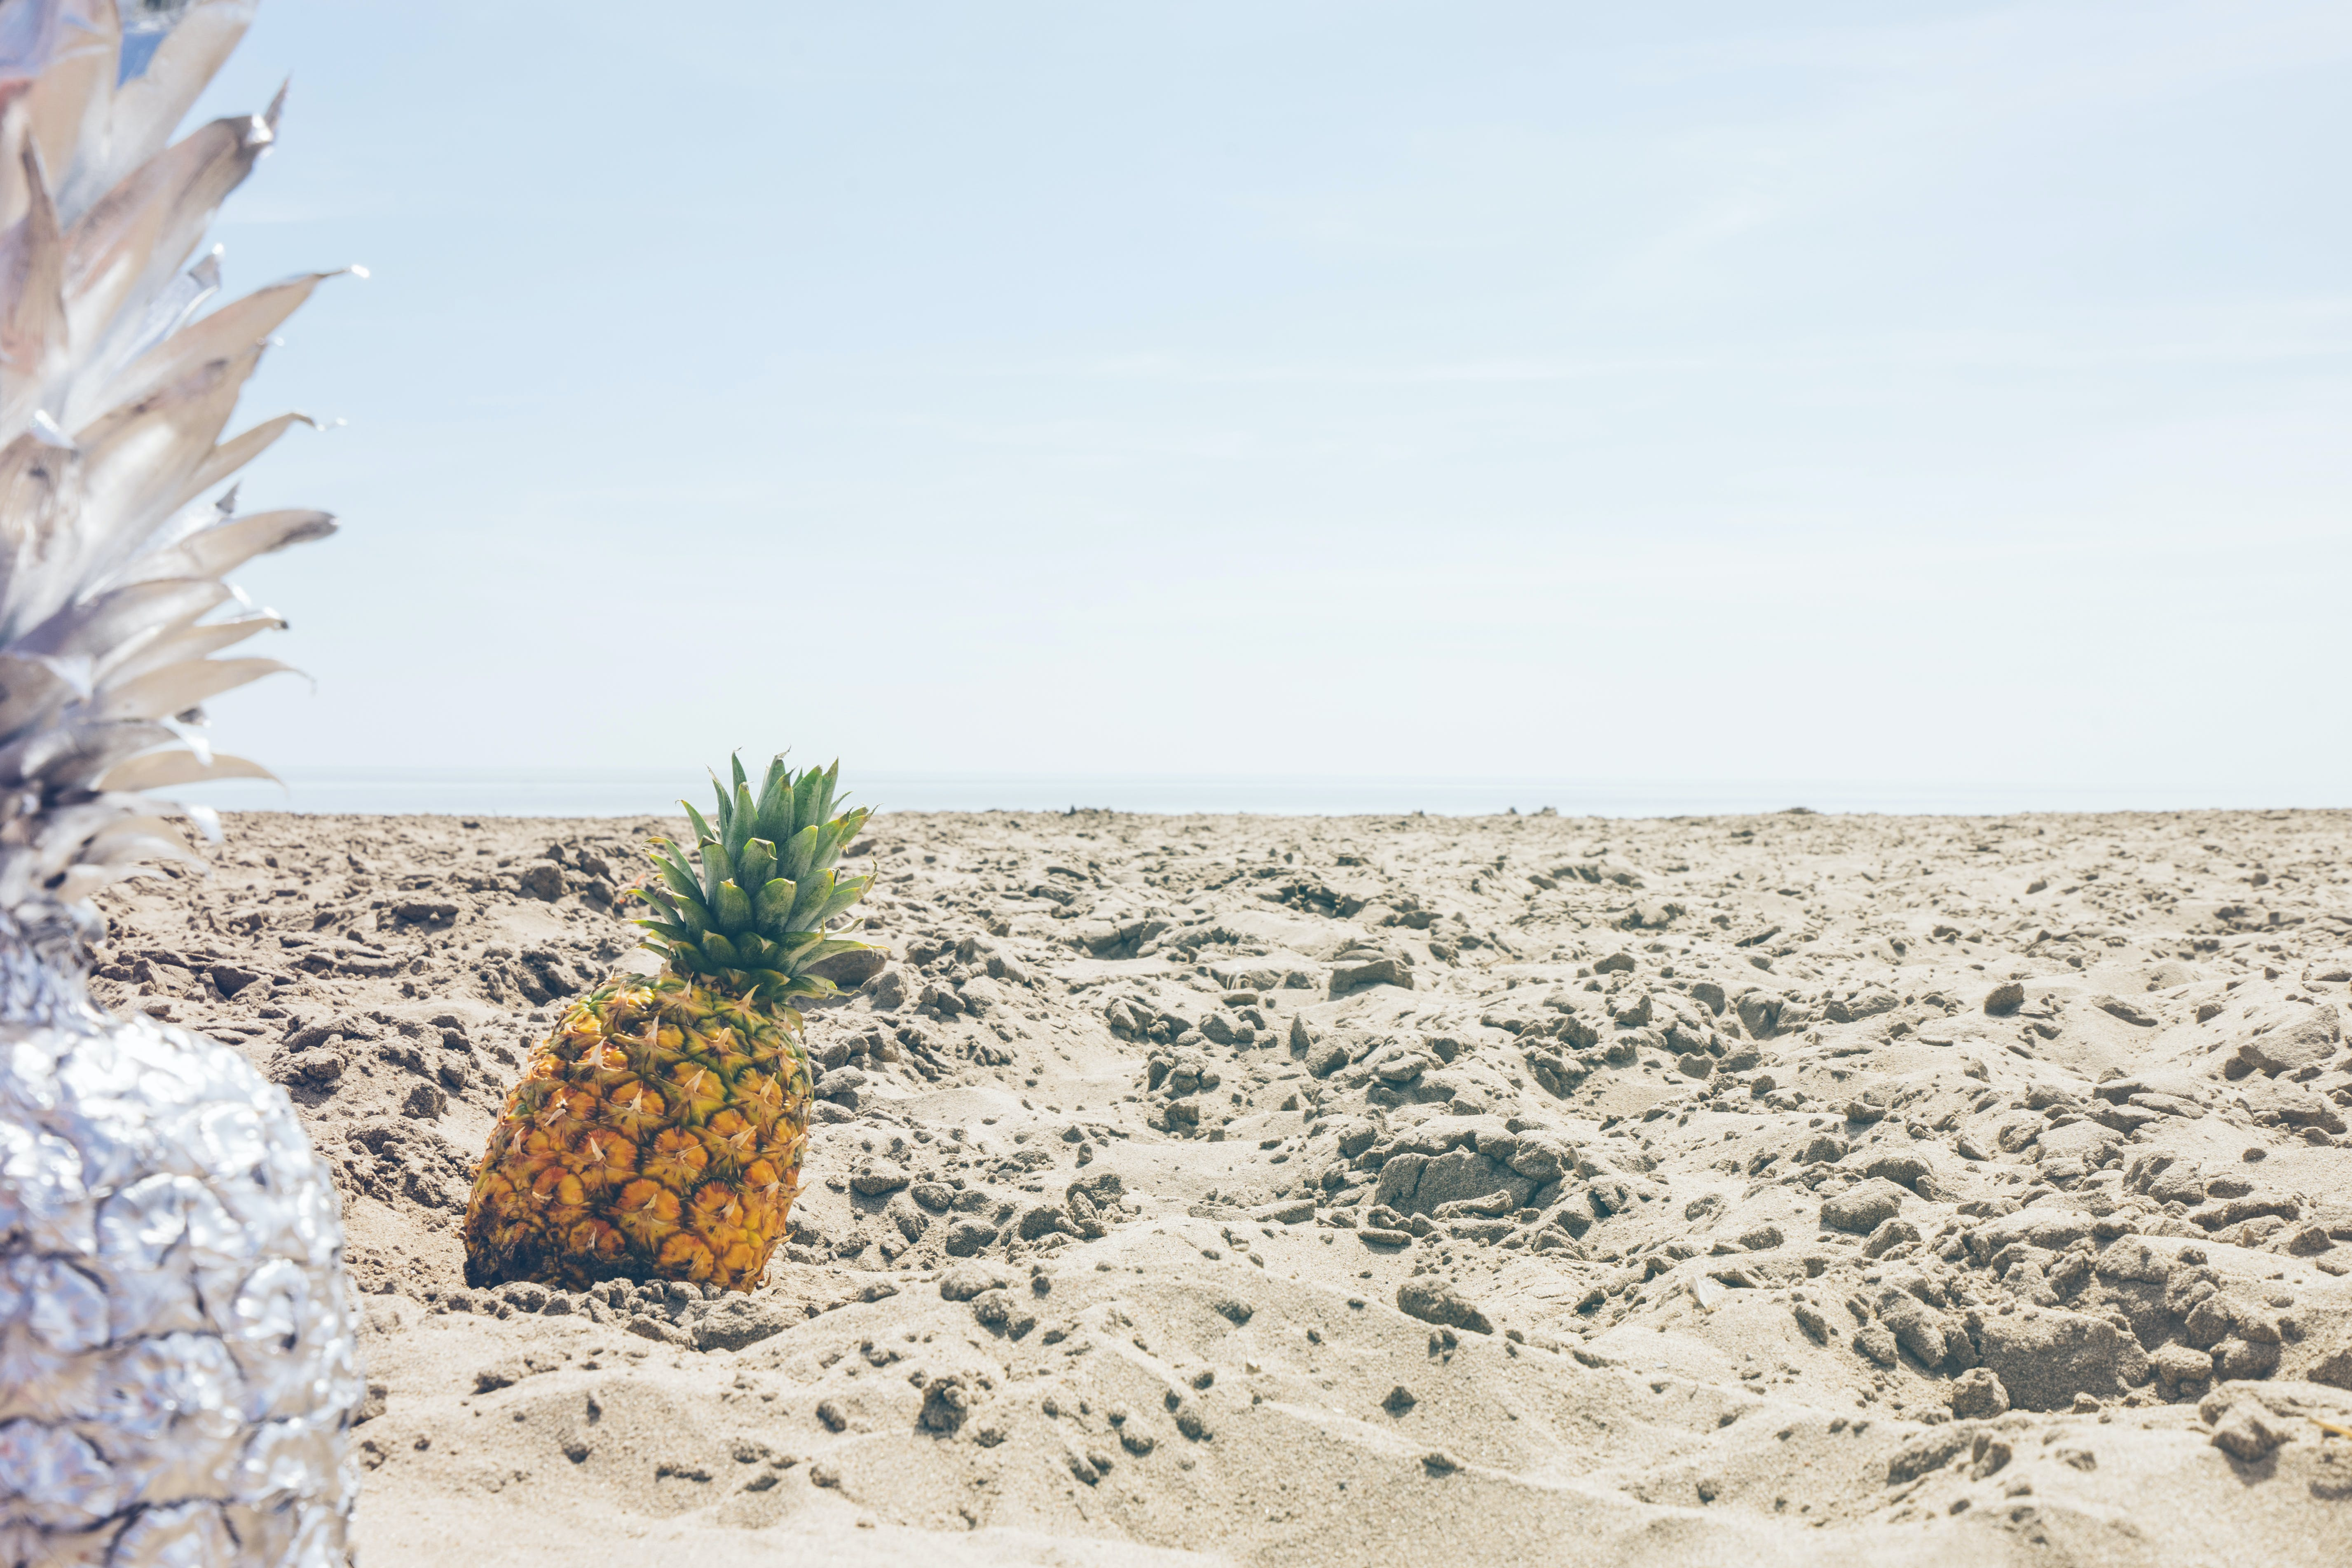 Two White and Yellow Pineapples on Brown Dirt